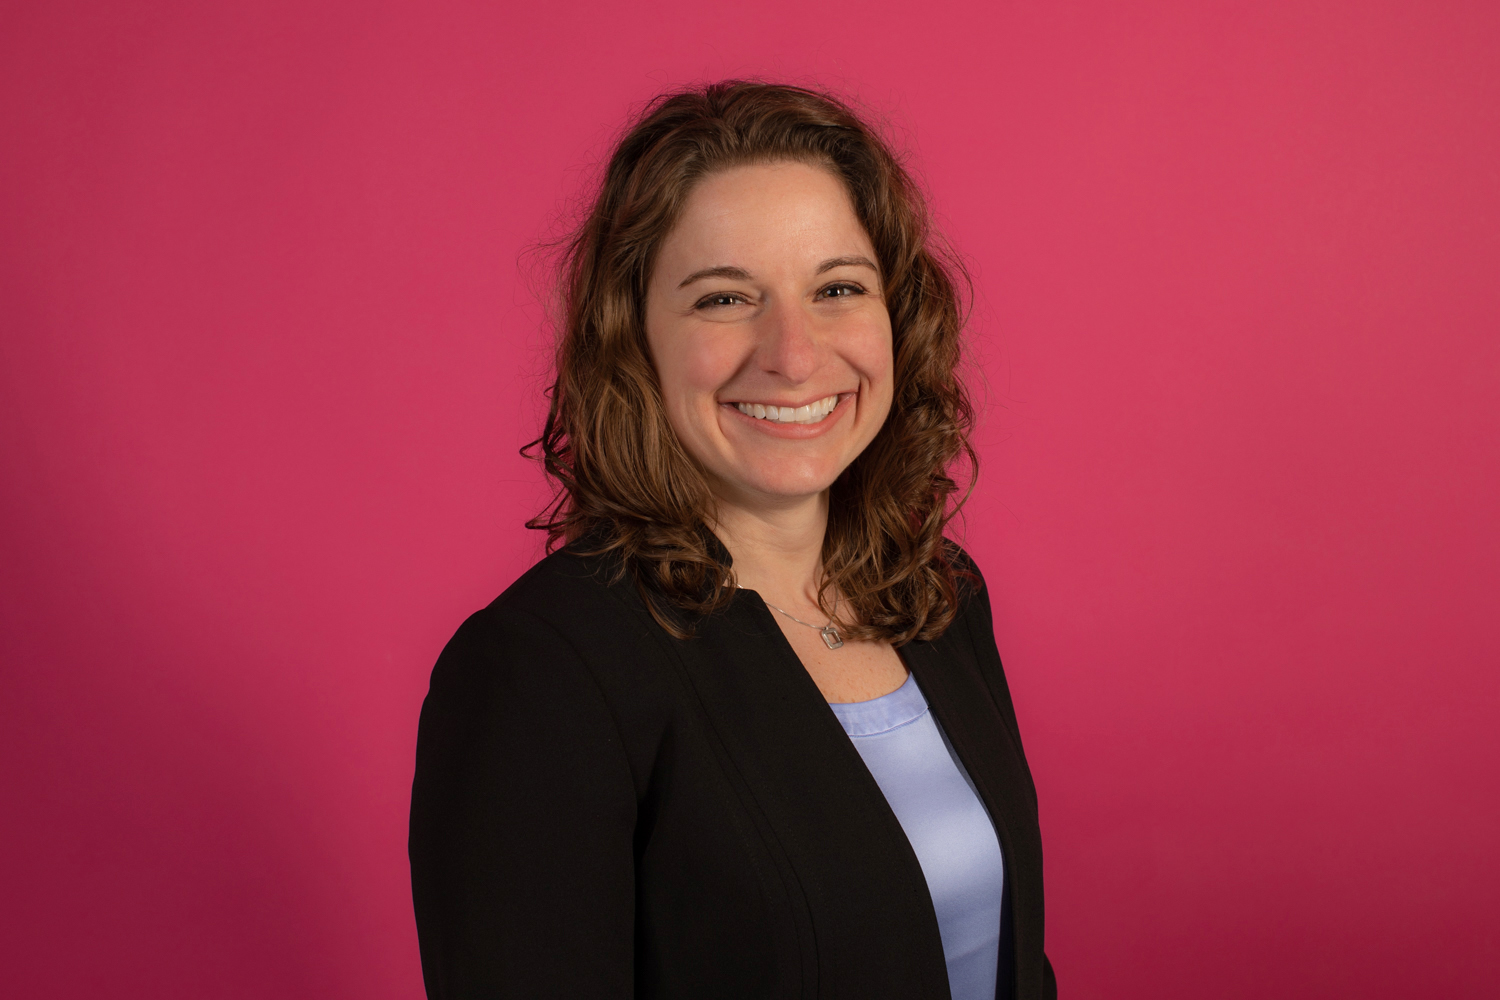 Kara Albert, Independent Talent Consultant - Kara Albert has spent over 15 years helping people and organizations to be their very best. Her experience lies in a variety of organizations - for-profit and not-for-profits and large, international organizations and start-ups. Kara's roles have included career coaching and development at a top 20 MBA program, talent development and performance management at Gallup, recruitment, leadership consulting, organizational effectiveness, and co-founding a start-up.Kara has helped to place roughly 50% of MBA students during her time at The Ohio State University. She was recognized as one of the top recruiters in the nation in her first full year as a finance recruiter. She has created and facilitated personal development programs for several women's groups and businesses. Most recently, Kara worked with a manufacturing company to implement an employee engagement strategy and manager training and development, implement a headcount and payroll reduction plan, and turnaround a struggling business line, increasing production output by roughly 50%.Kara is passionate about helping people succeed. She currently resides in Chicago, IL, is an avid foodie and traveler.